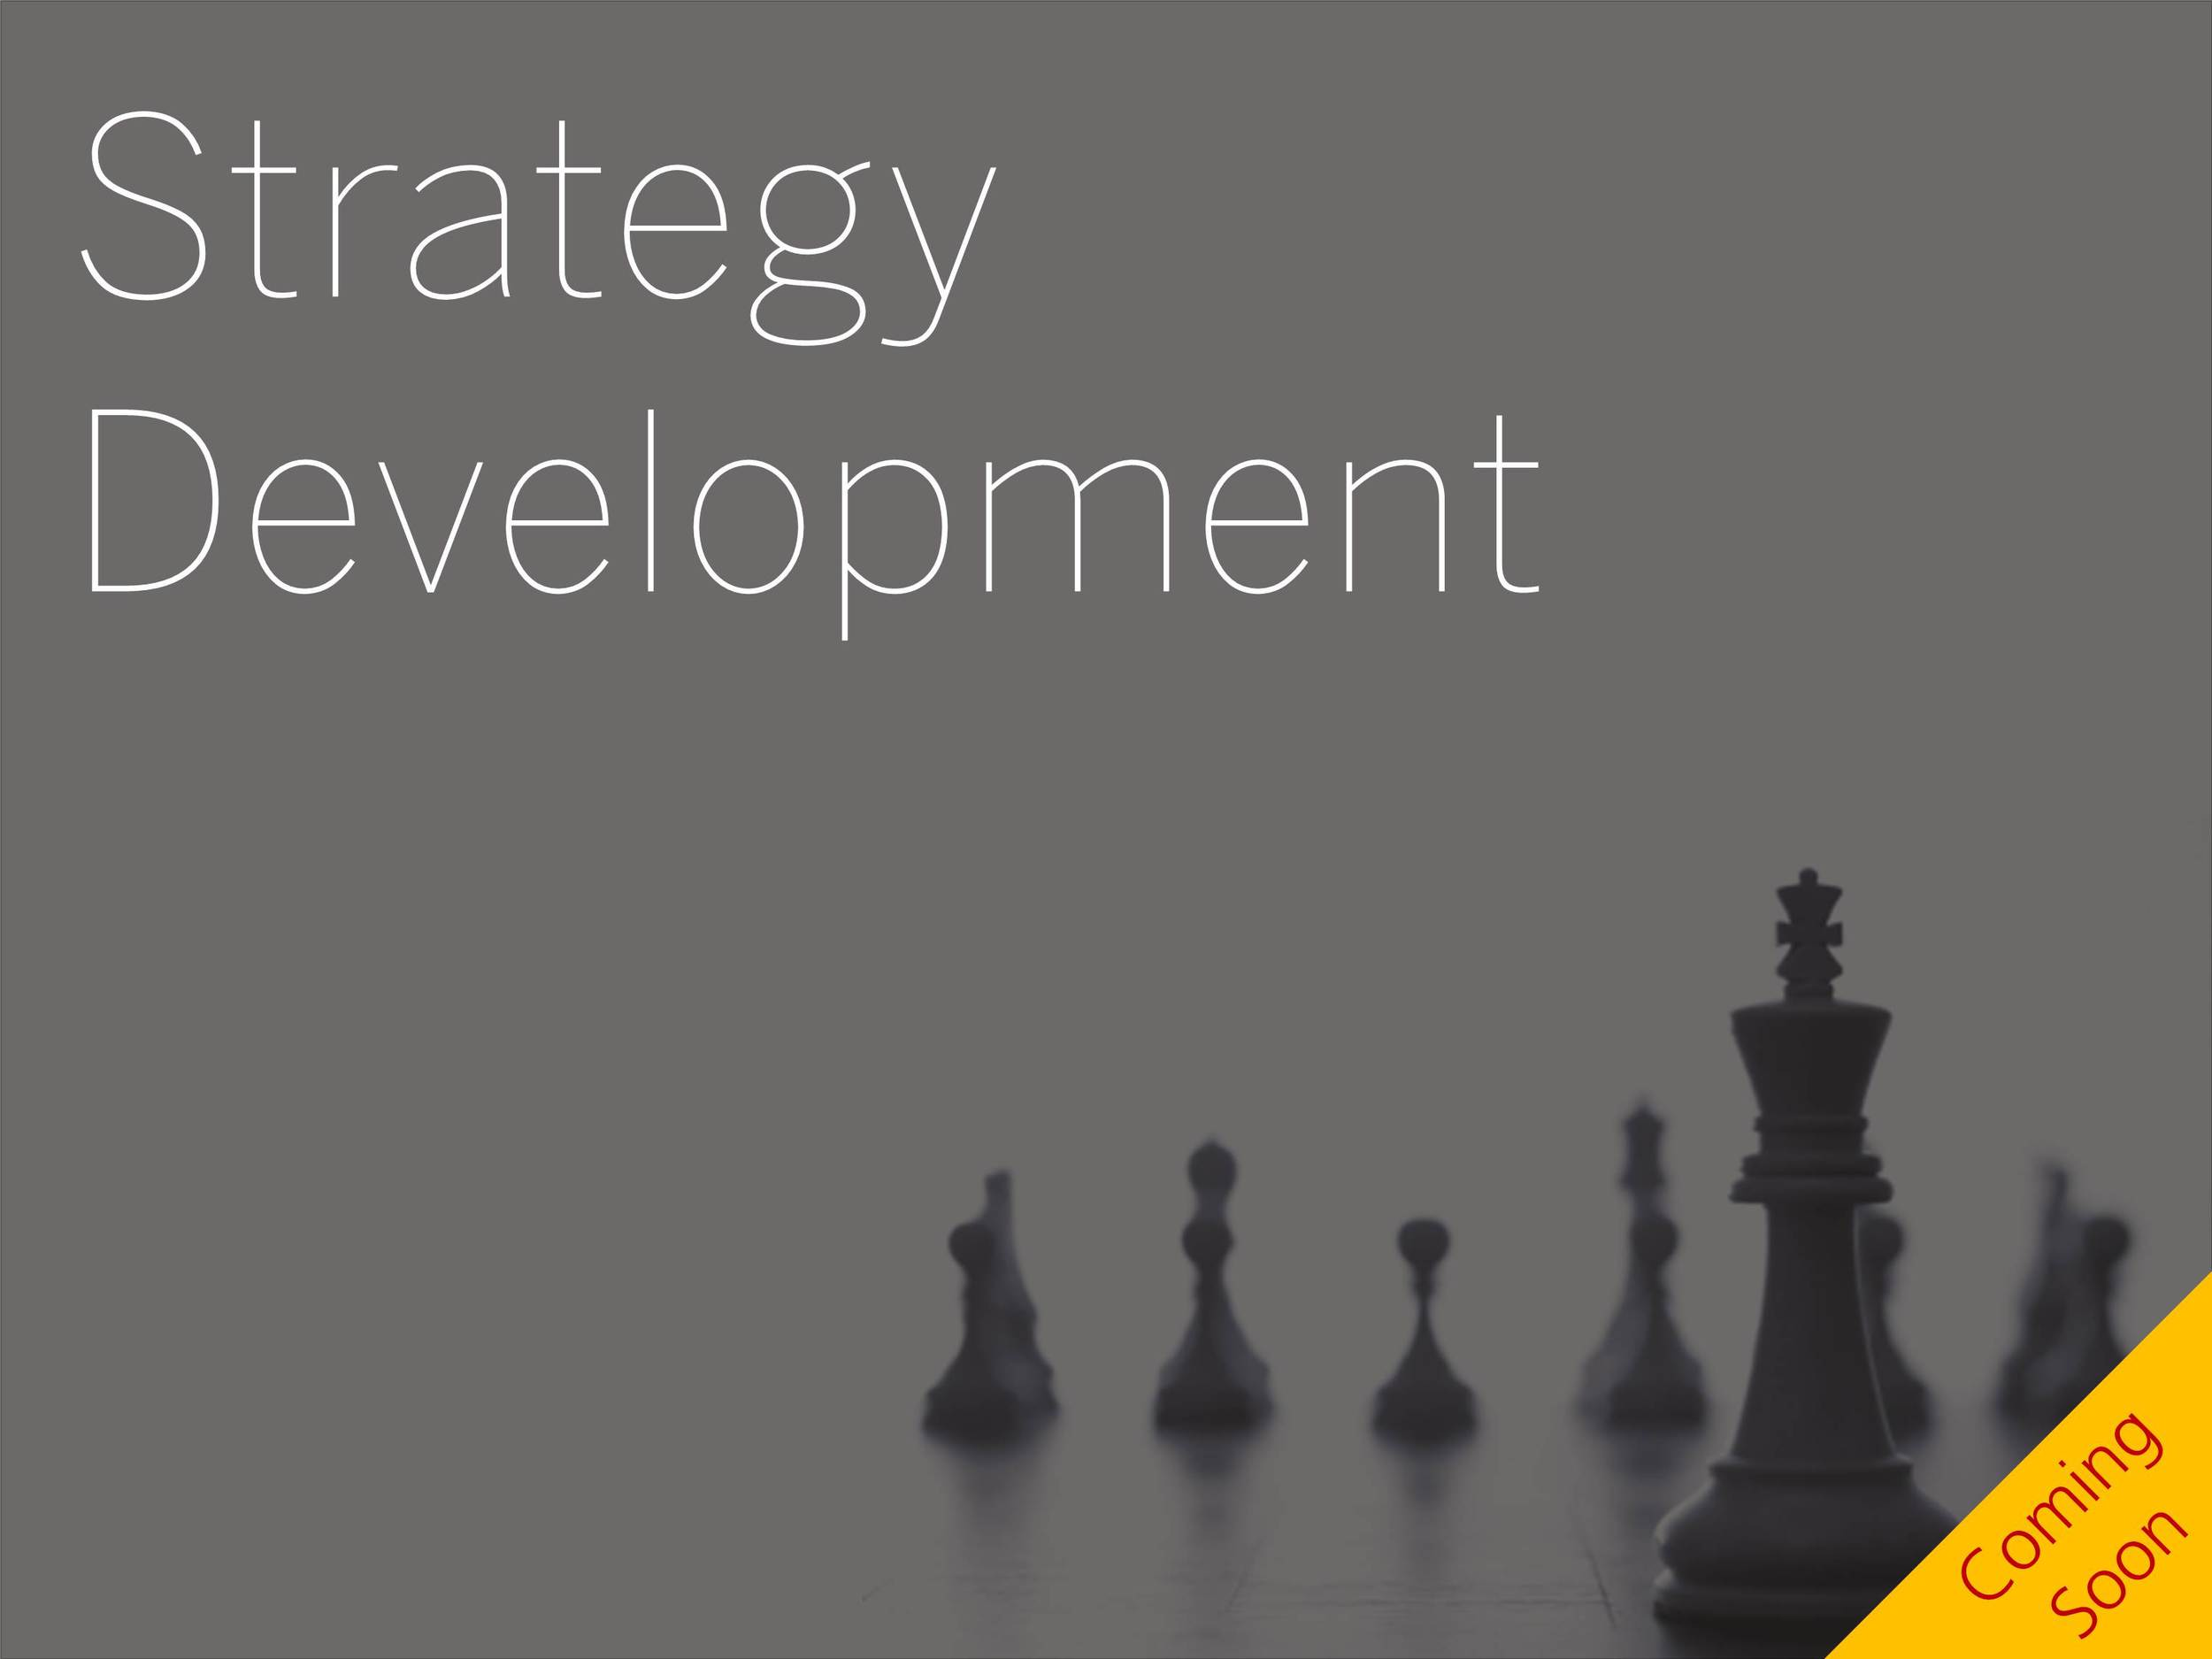 This Point of View provides a perspective on how to meet the future and develop a strategy It outlines a methodical approach to defining the future state and how to get there